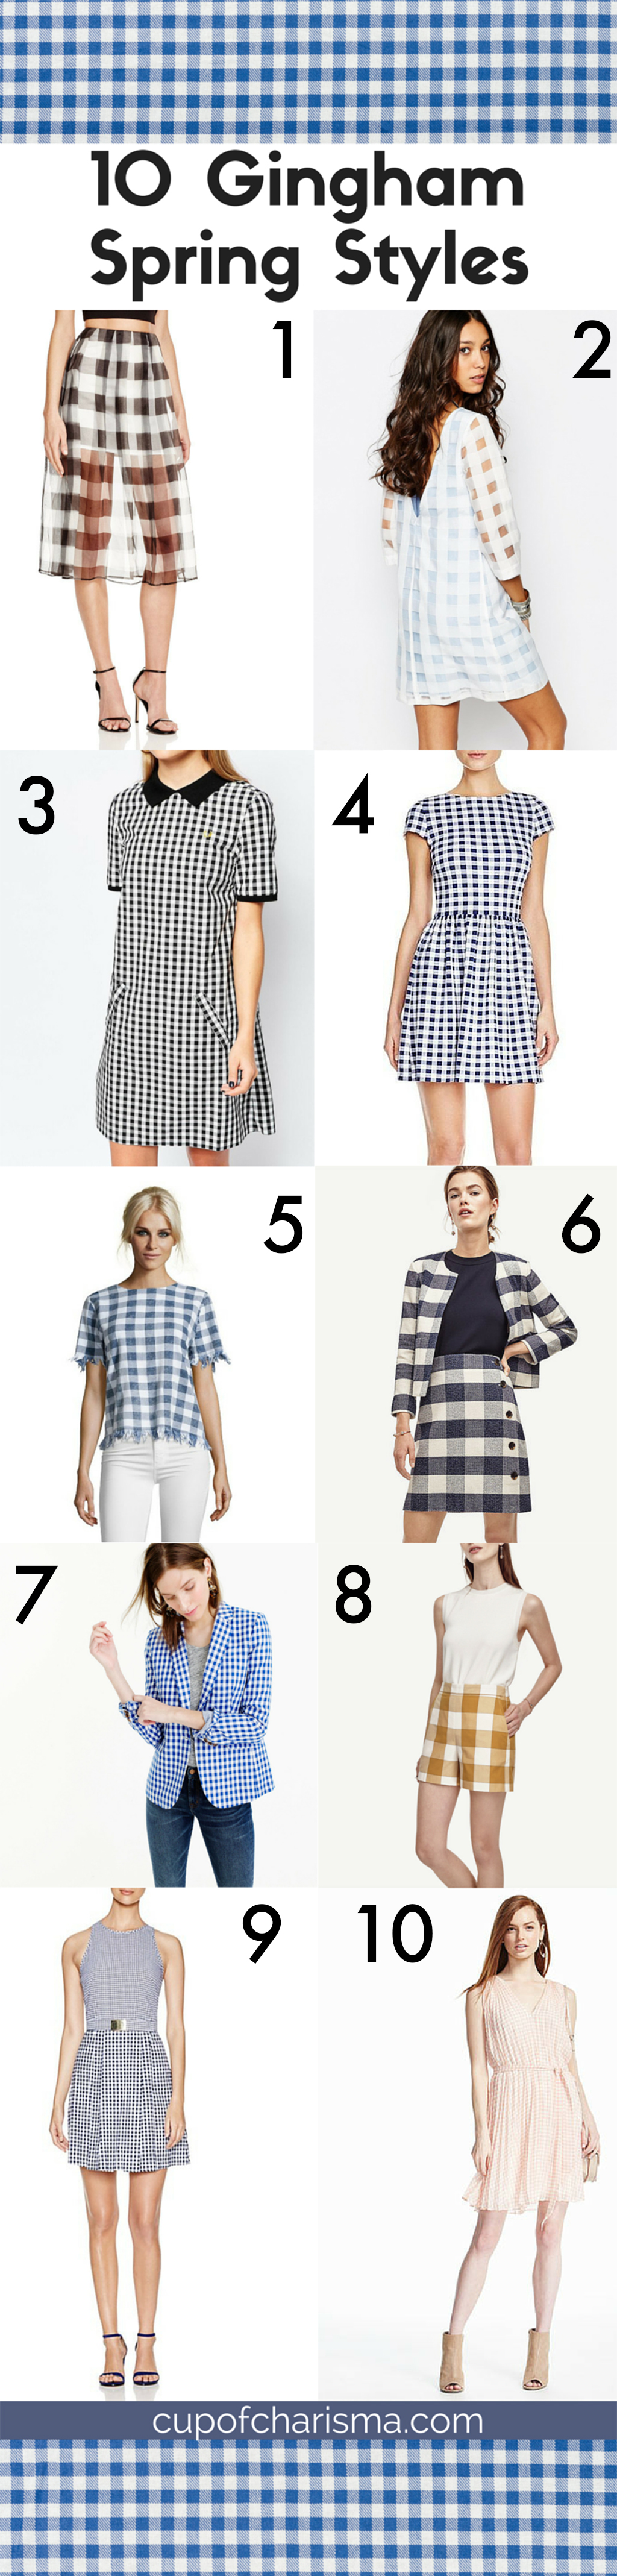 Gingham is one of the top spring trends, so here's a definitive list of the top 10 gingham pieces to add to your closet.